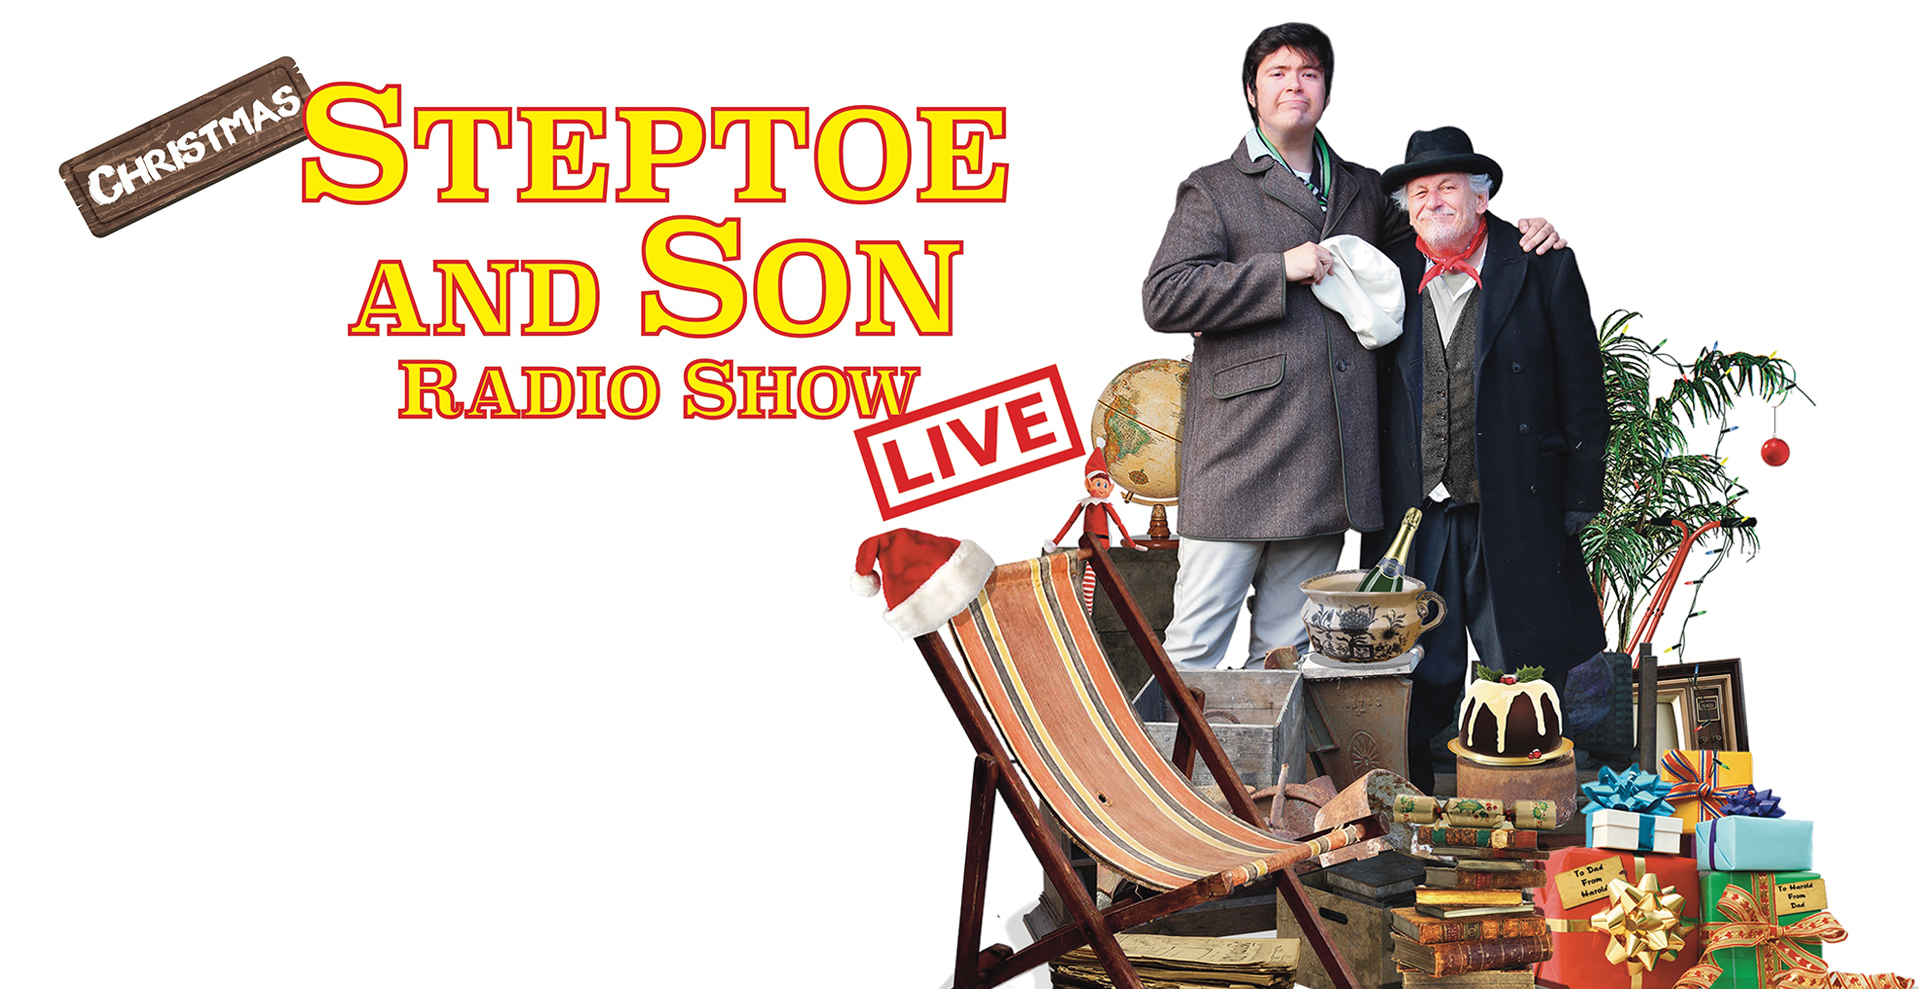 Christmas Steptoe and Son Radio Show LIVE!